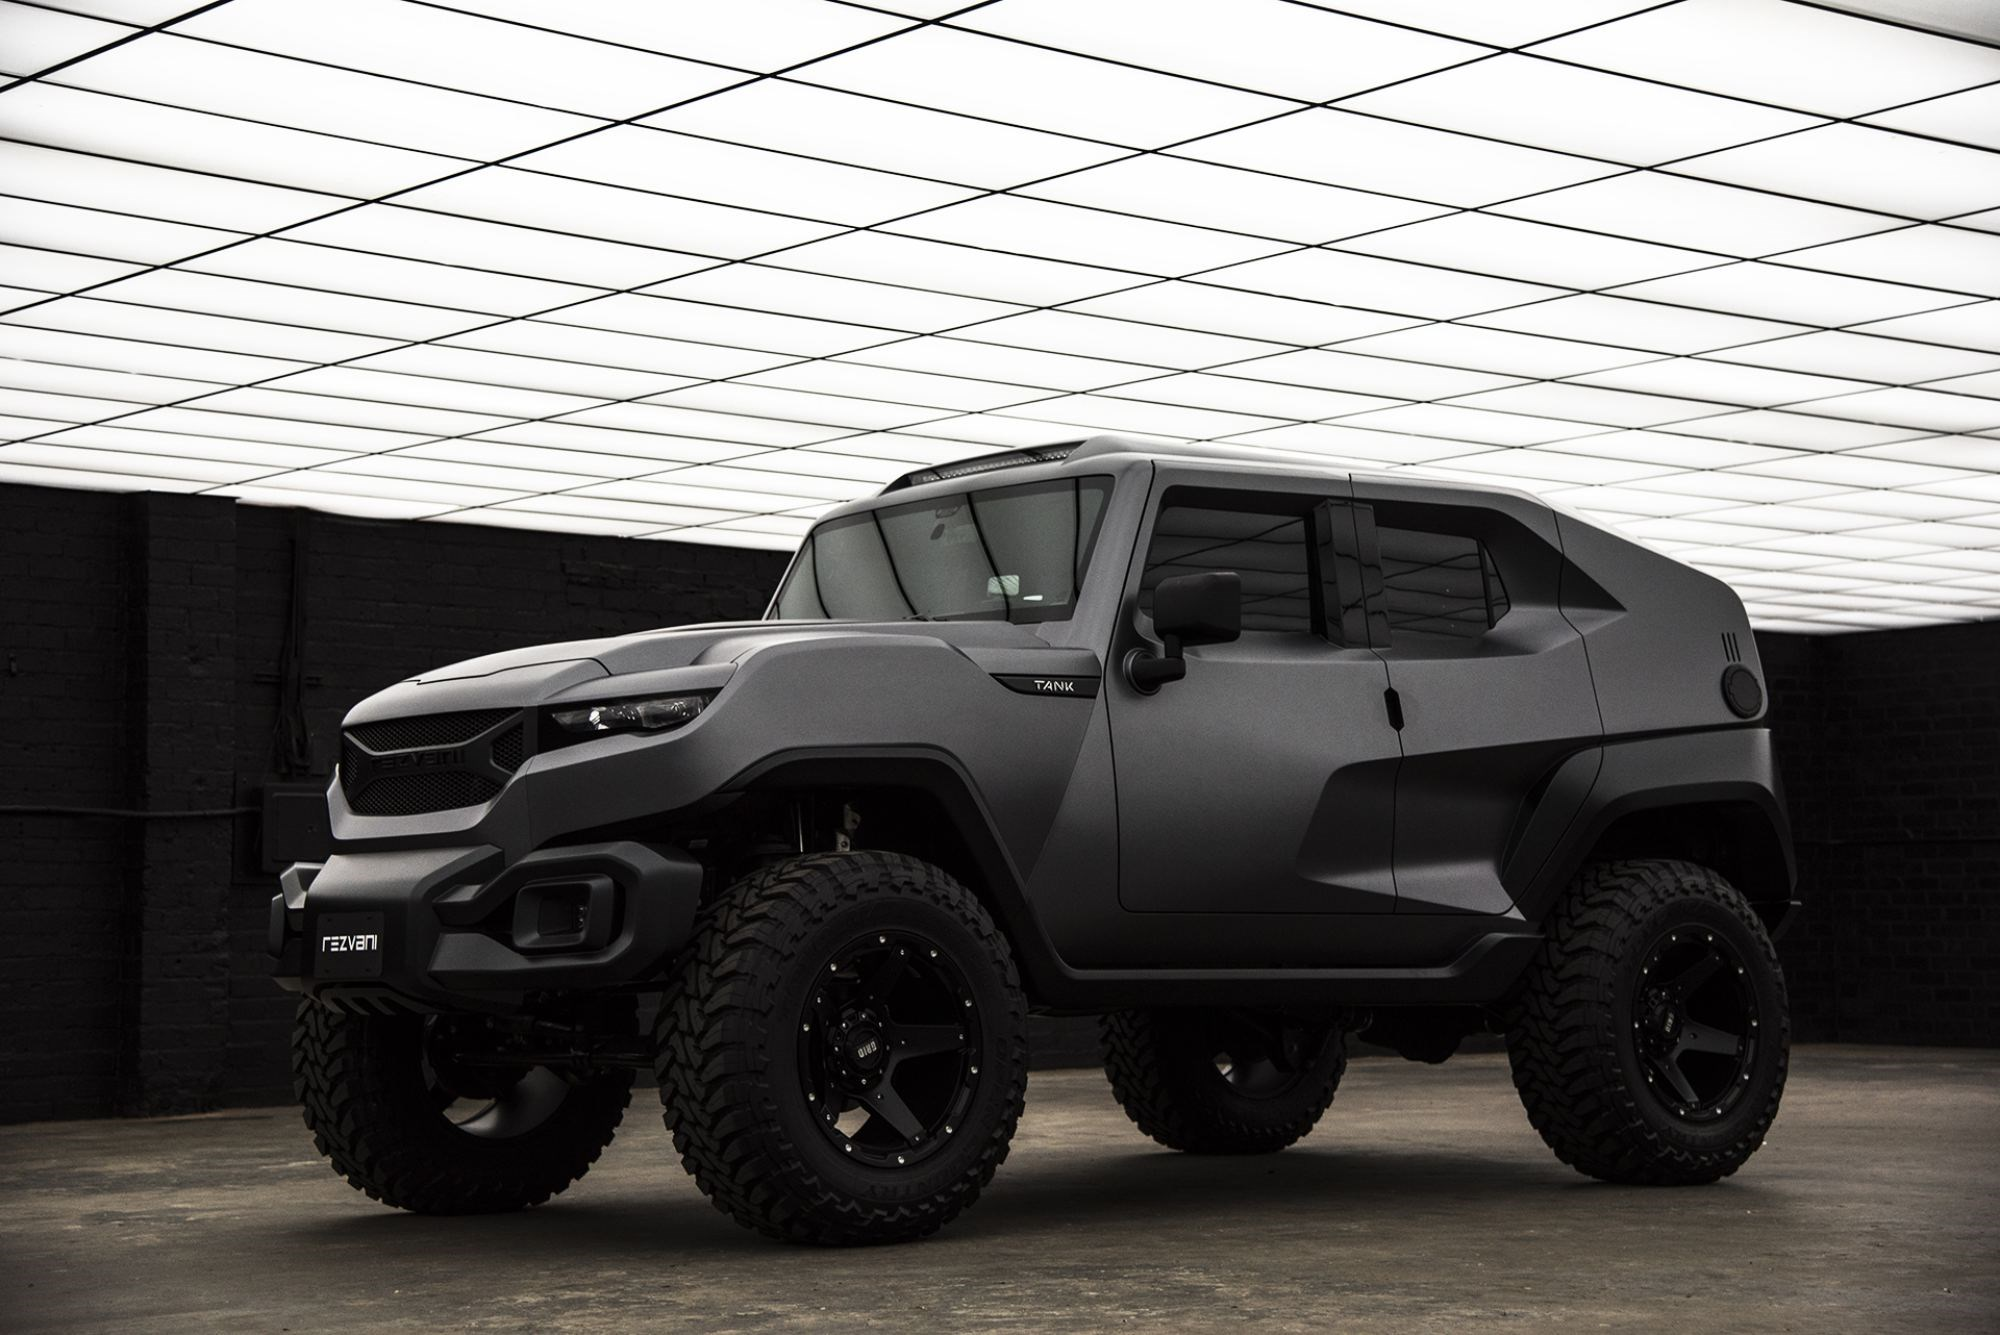 Meet The Apocalypse-Ready 373kW V8 Rezvani Tank Thumbnail